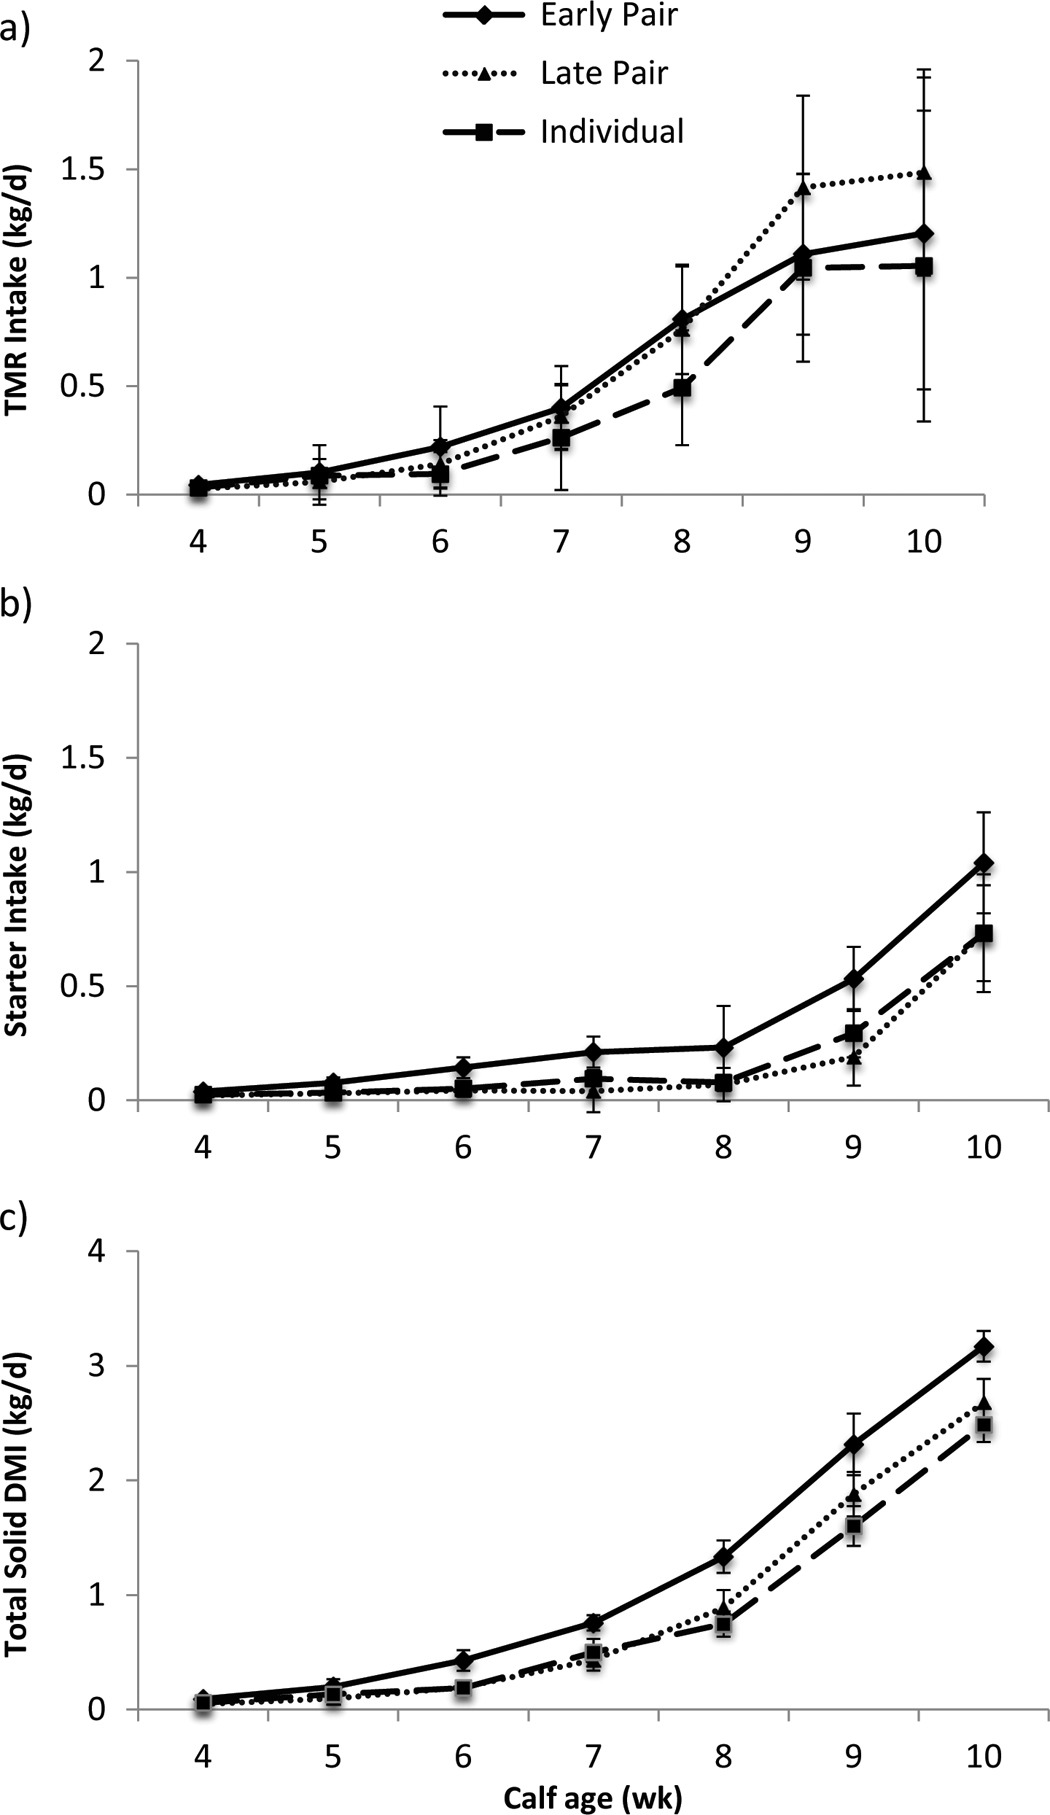 Figure 1. Least squares means (±SE) of a) TMR (kg of DM), (b) calf starter (kg of DM), and (c) solid feed DMI (kg of DM) for early-paired (paired at 6 ± 3 d of age; n = 8 pairs), late-paired (paired at 43 ± 3 d of age; n = 8 pairs) and individual calves (n = 8 calves). Weekly averages are shown in relation to calf age, with age ranging from 4 to 10 wk.